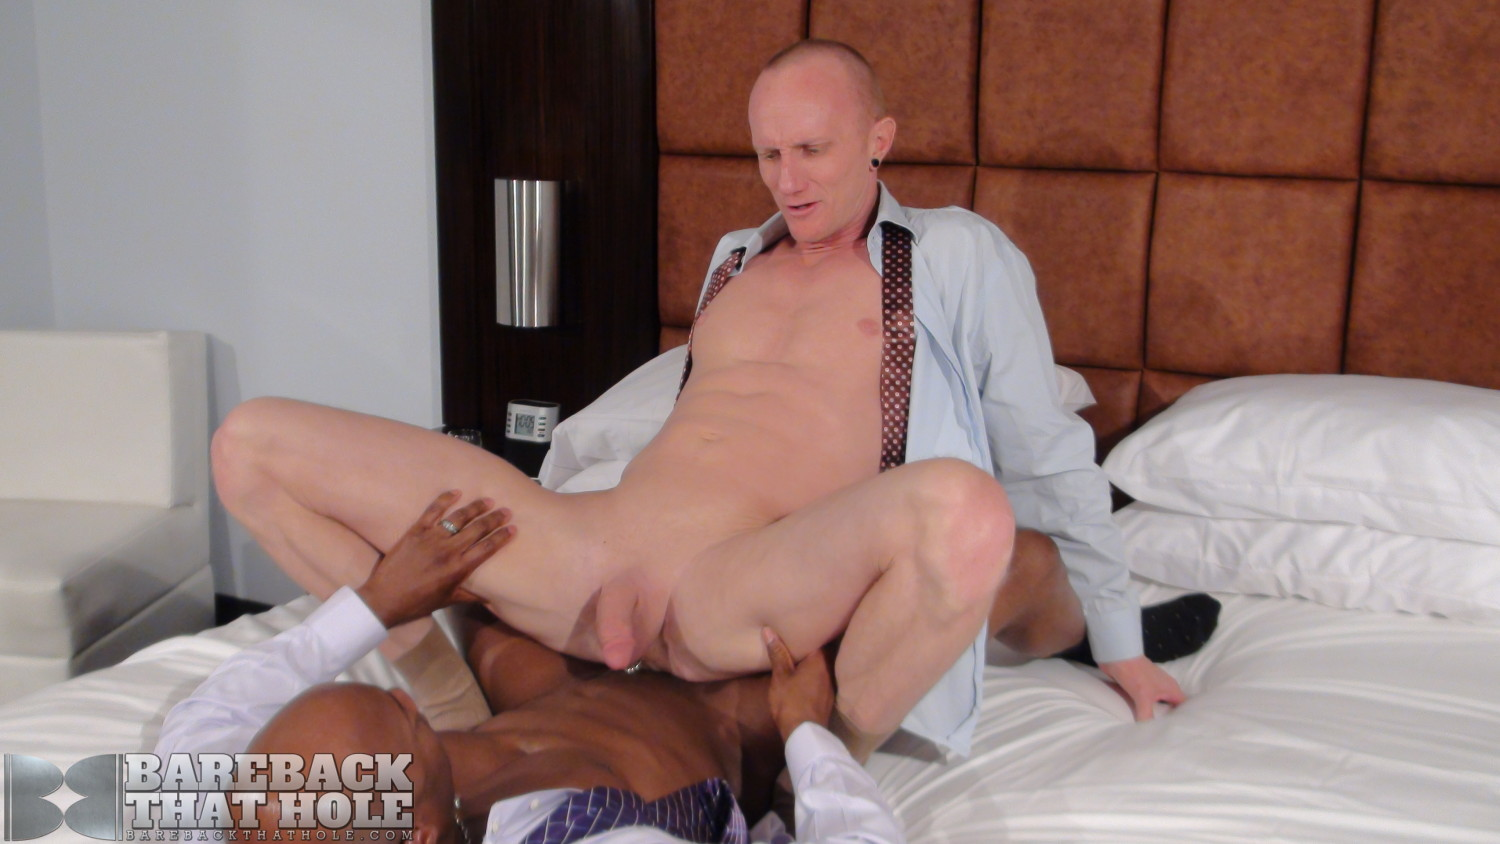 Bareback That Hole Champ Robinson and Mason Garet Interracial Big Black Cock Bareback Amateur Gay Porn 14 Black Corporate Executive Barebacks His White Co Worker